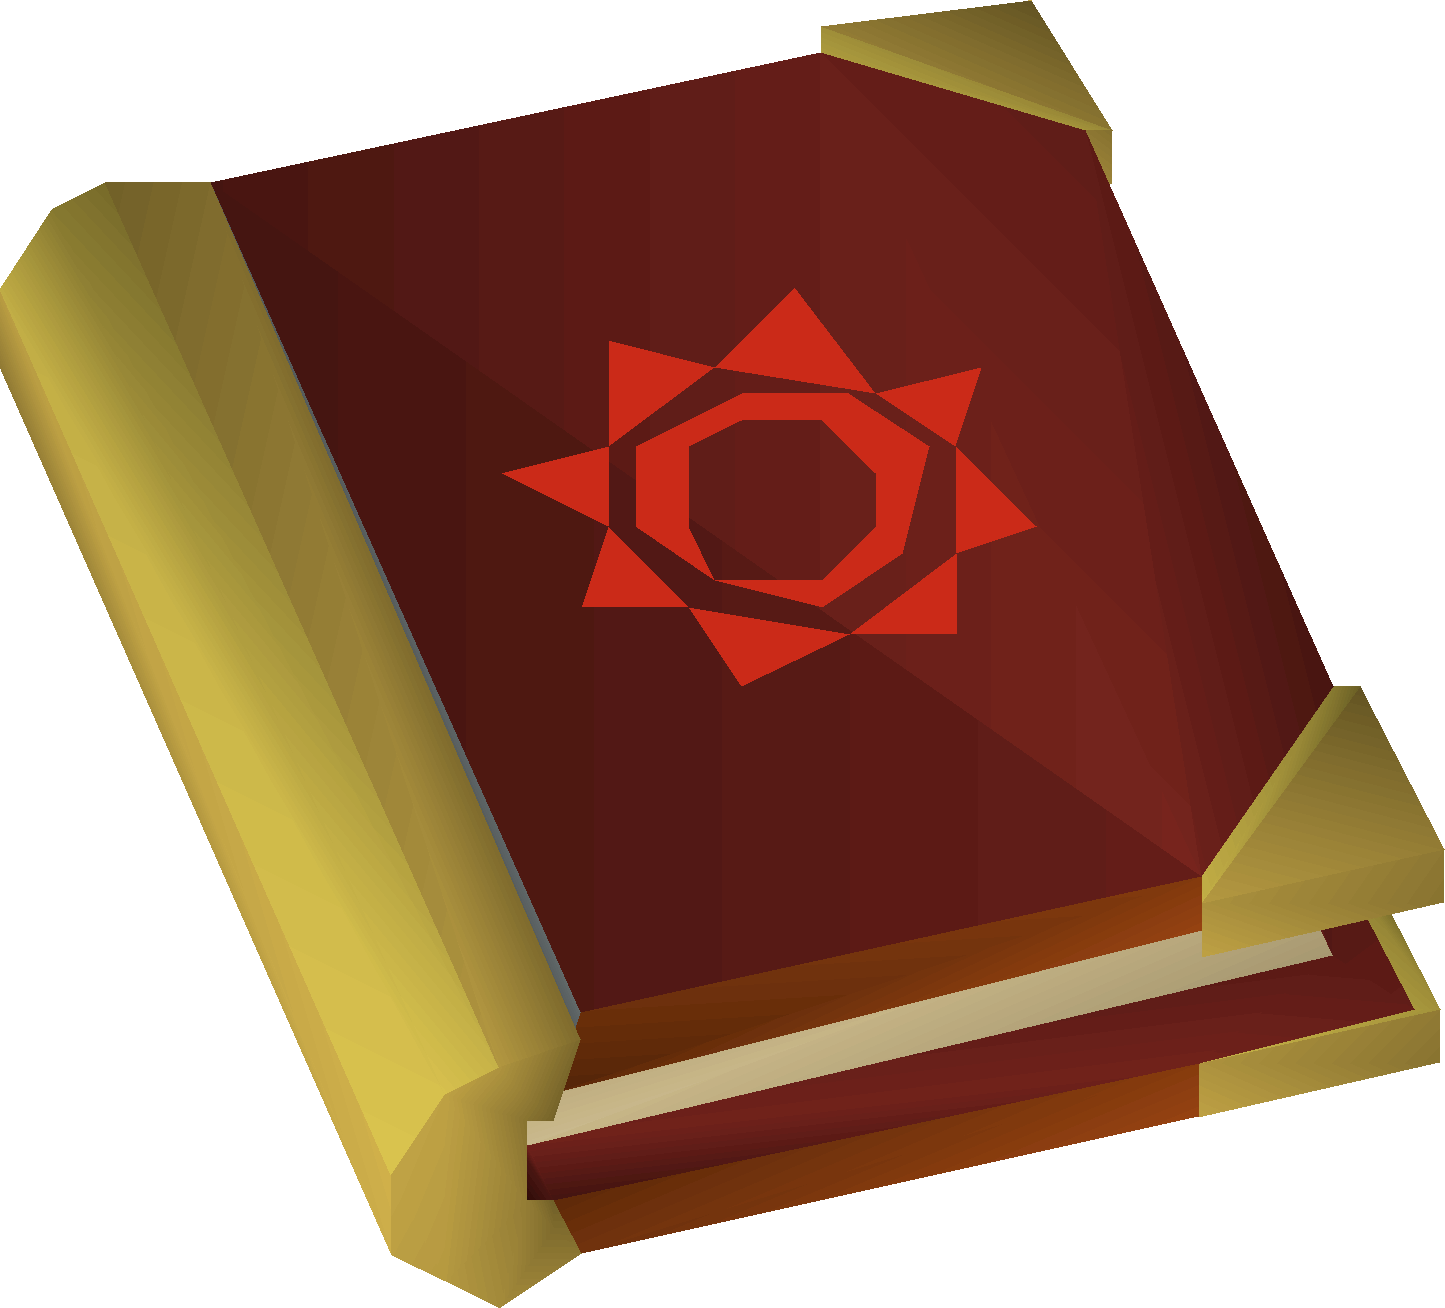 Mage's book - OSRS Wiki